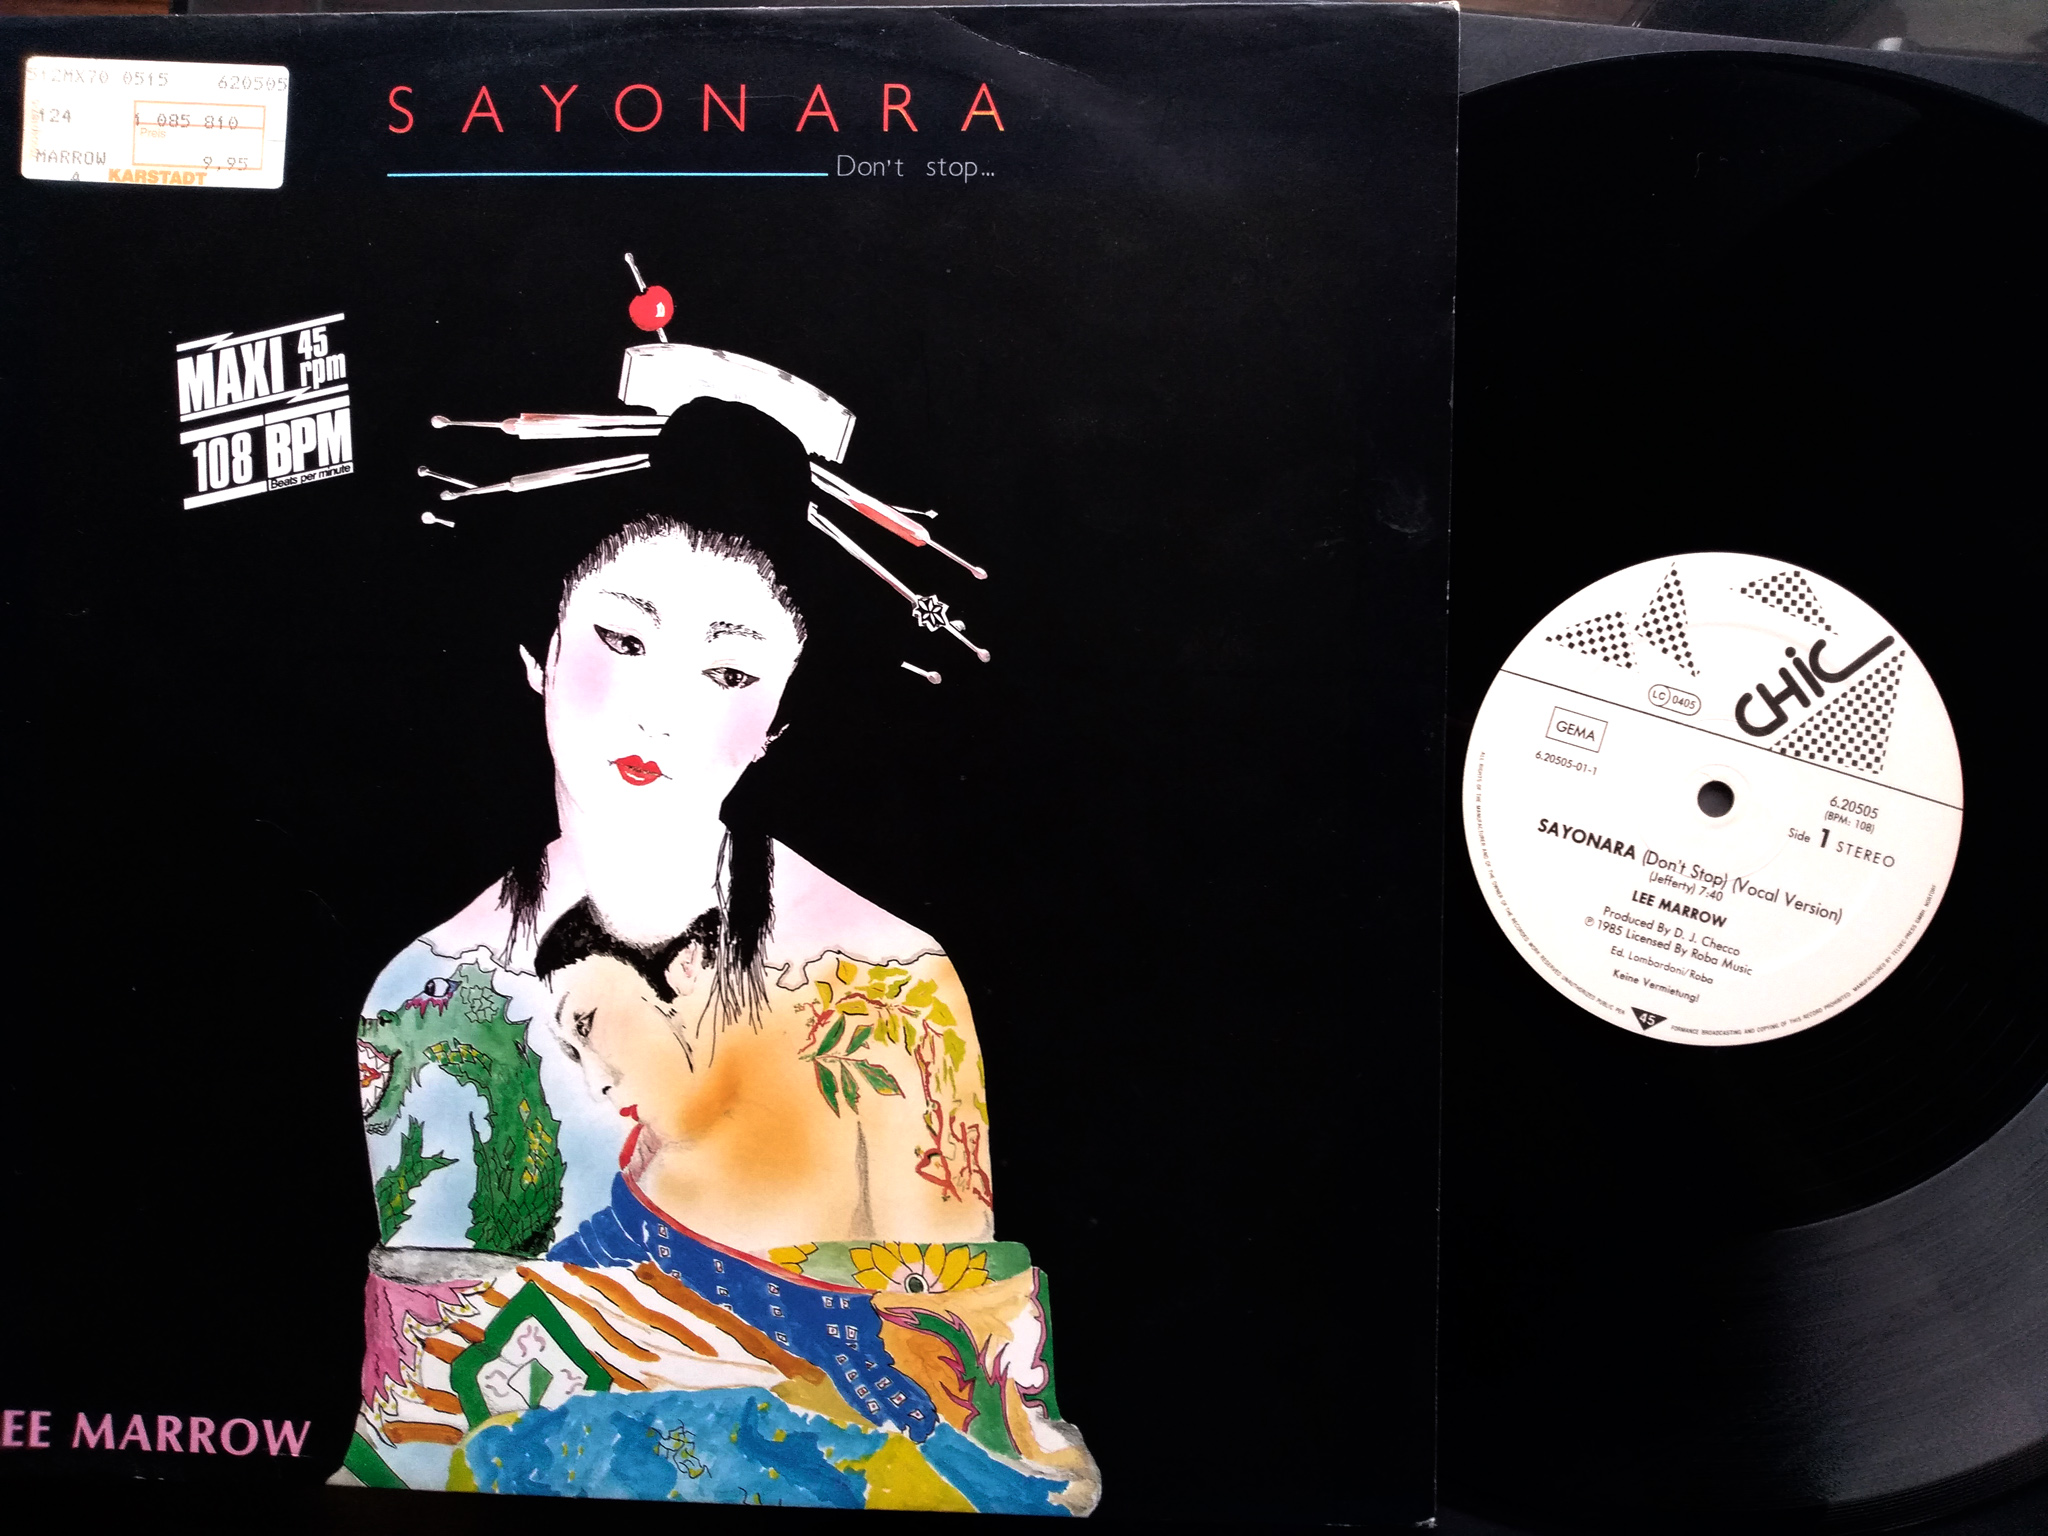 Lee Marrow - Sayonara